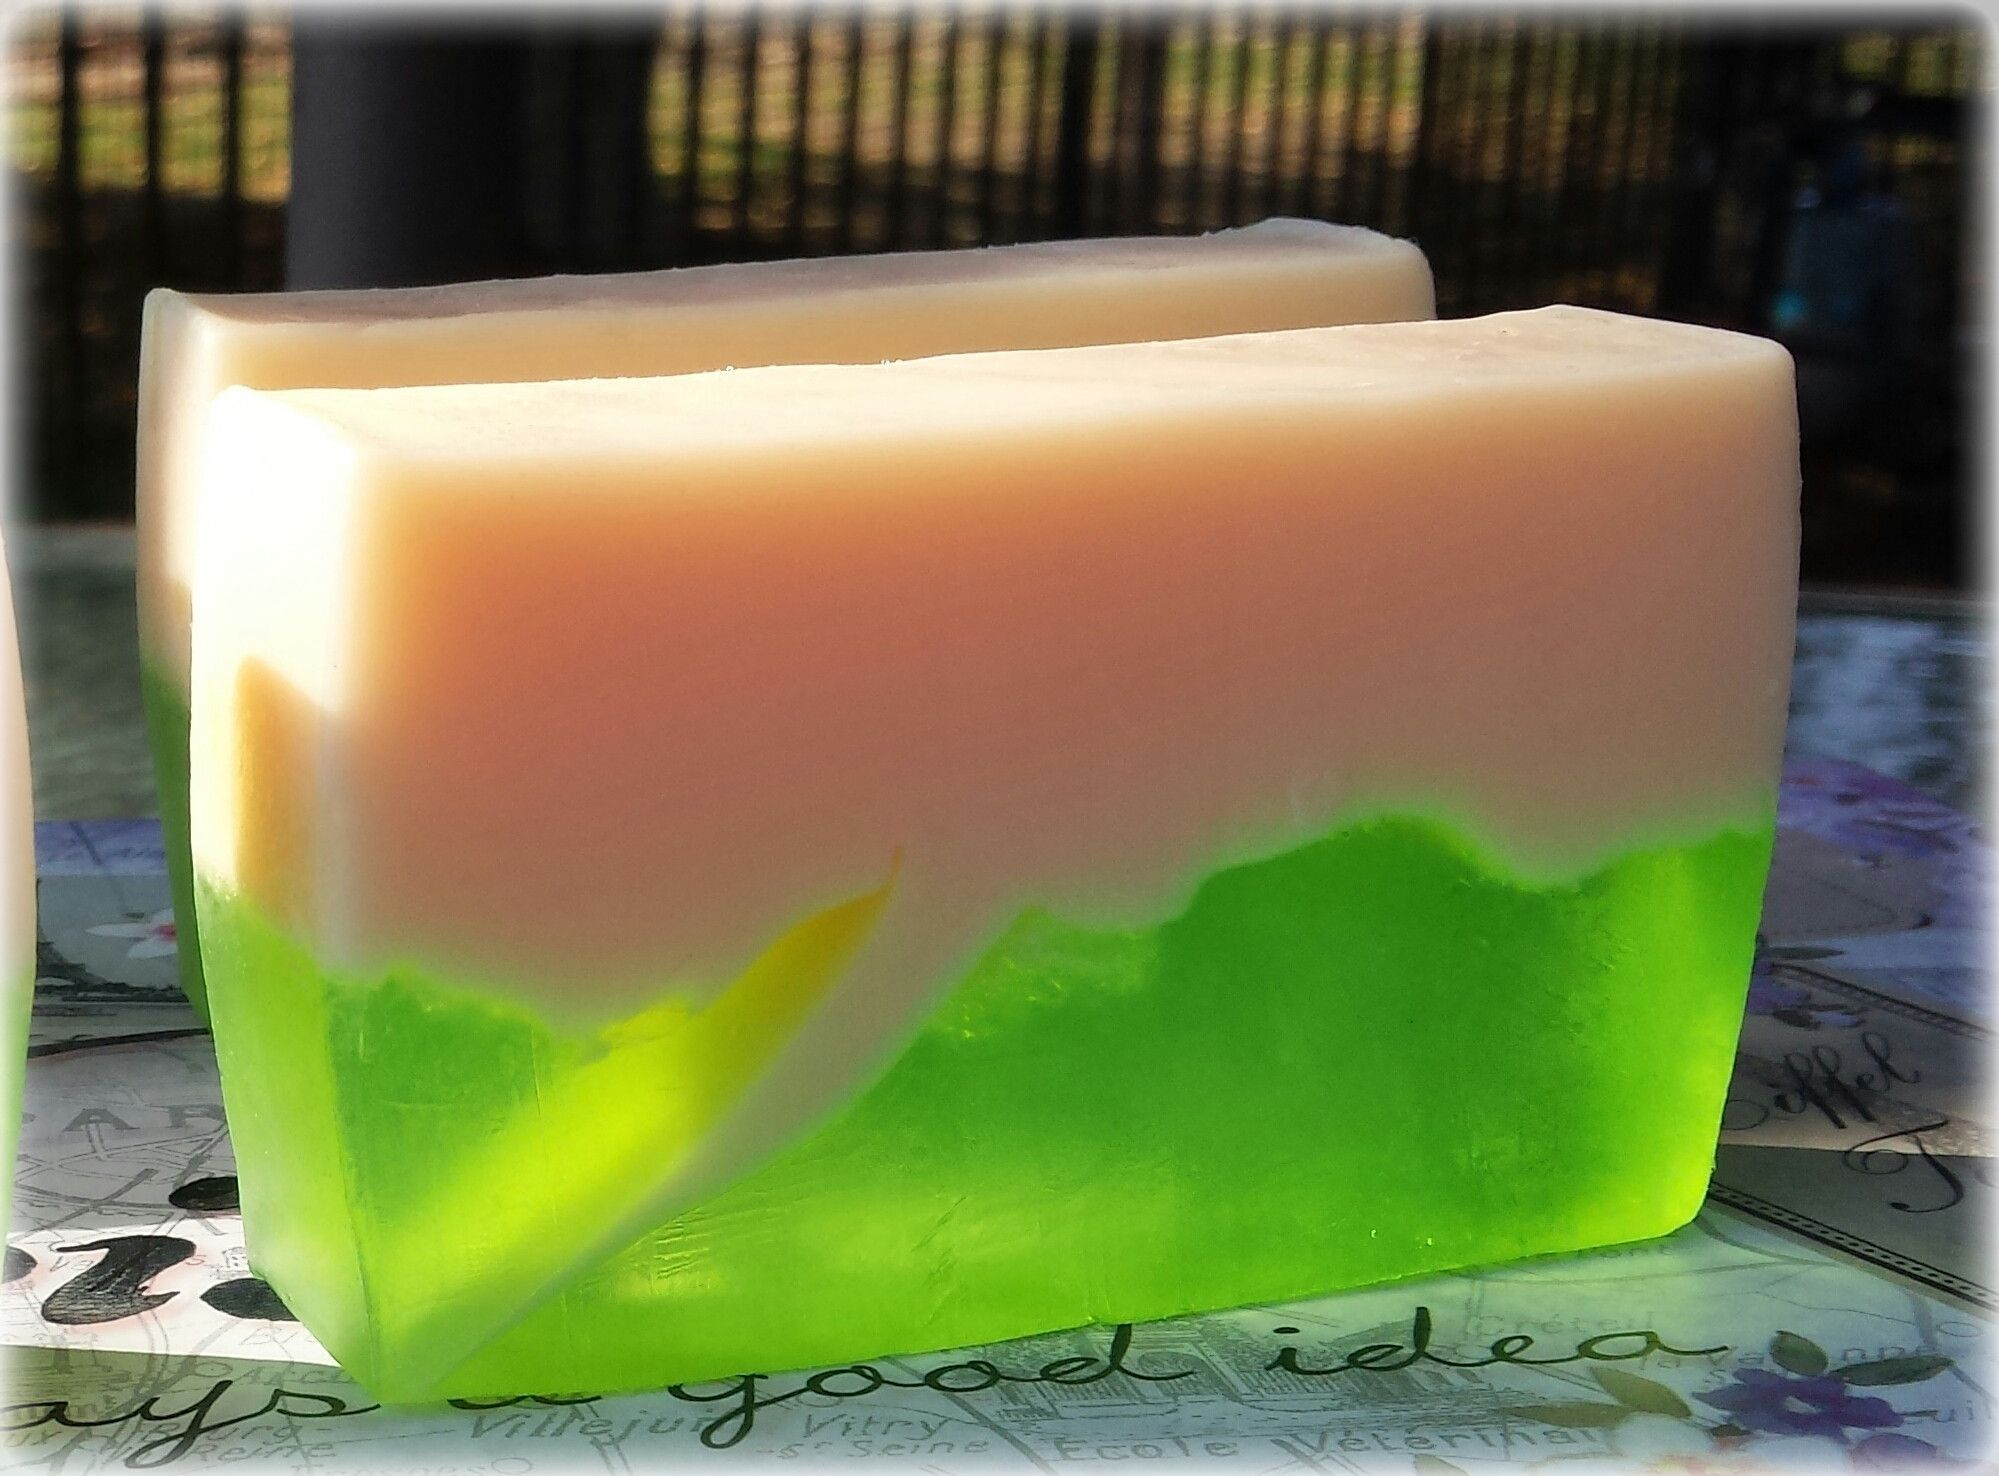 Diy Soap Without Glycerin Cucumber Melon Soap Homemade Bath Bombs And Soap